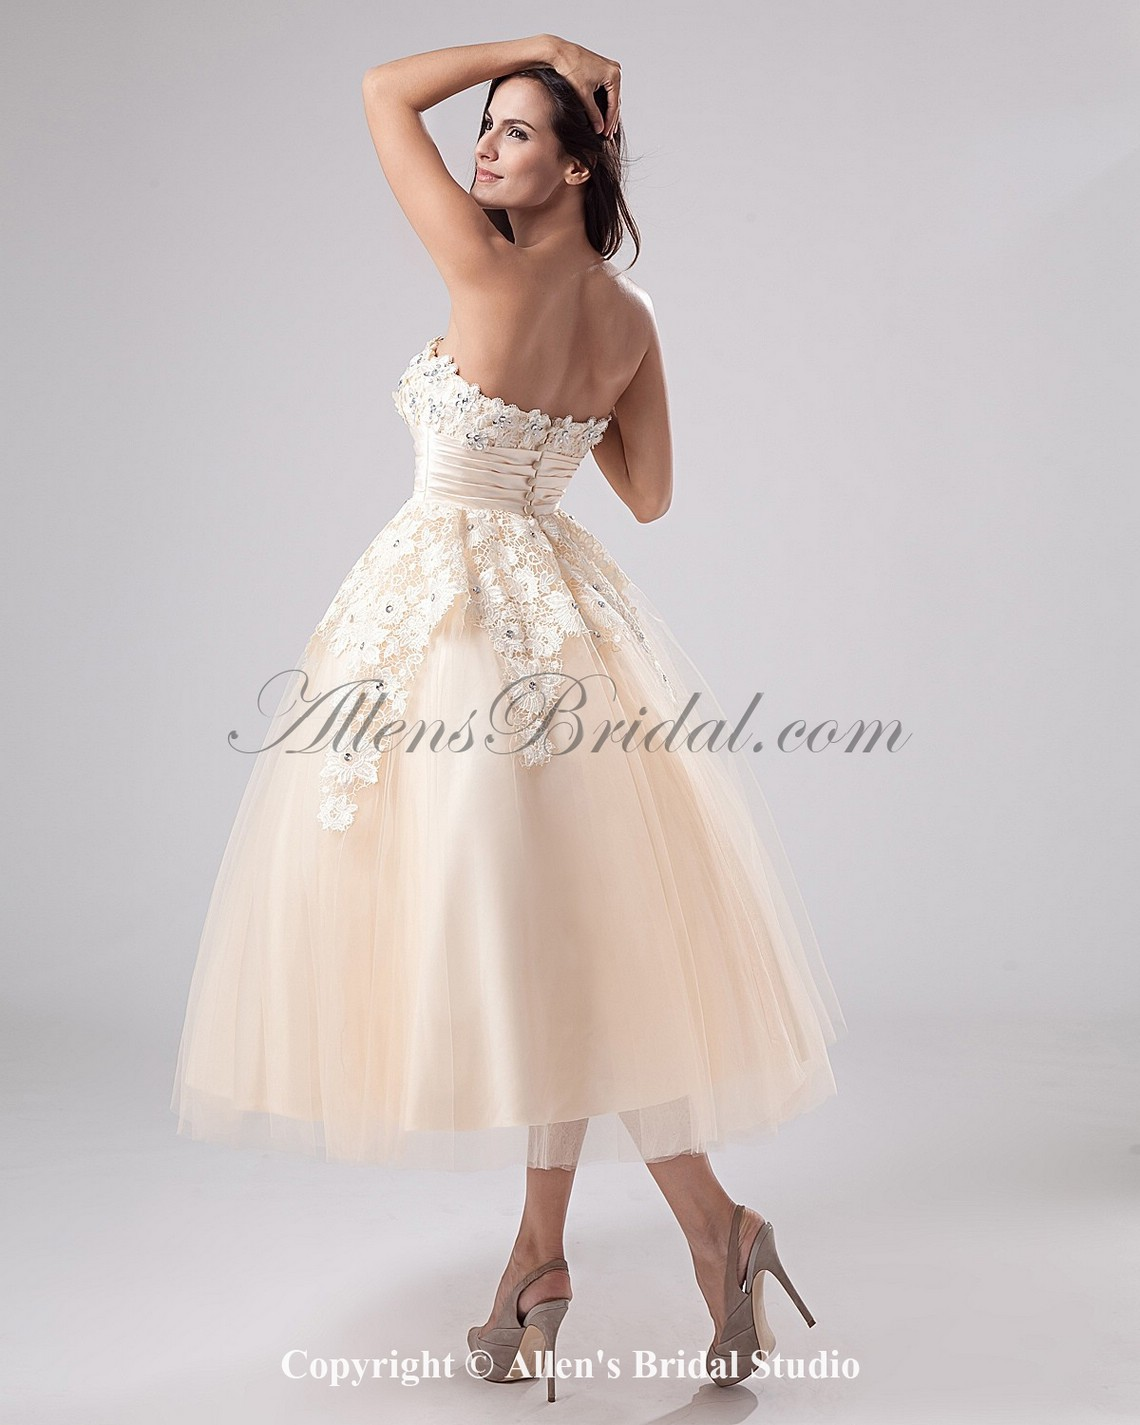 /1785-14115/satin-and-net-strapless-tea-length-ball-gown-wedding-dress.jpg